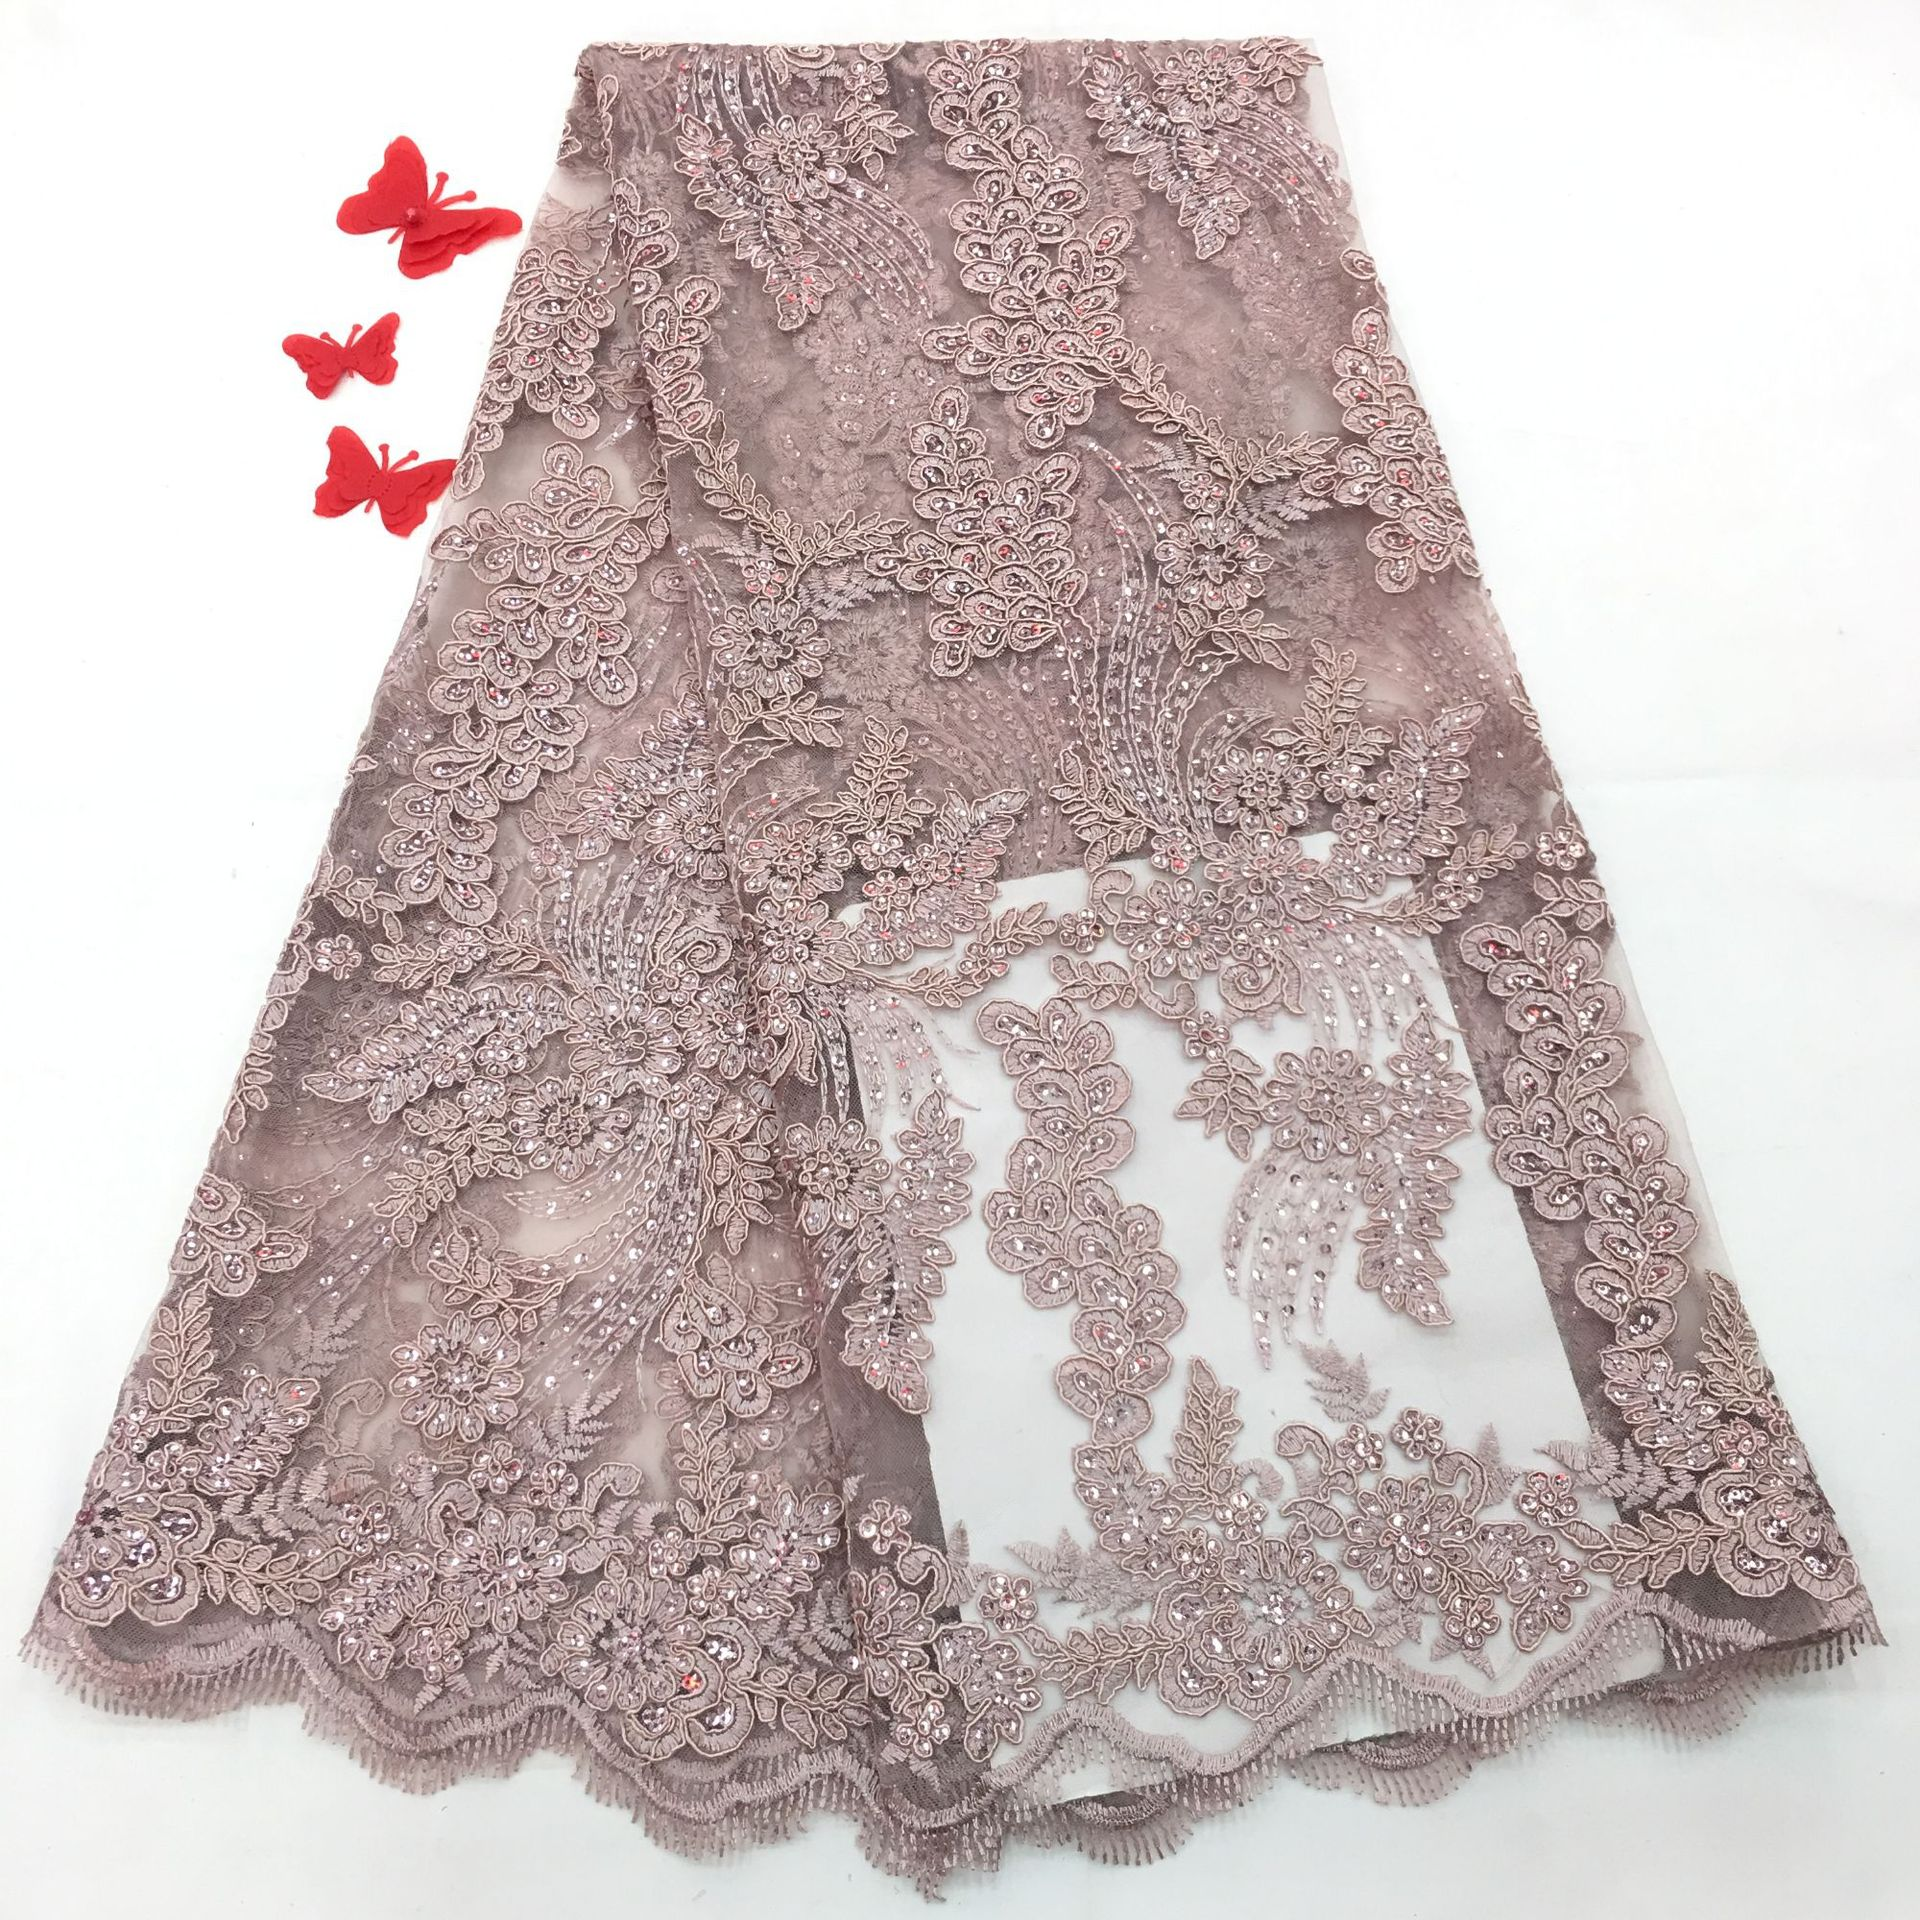 New Arrival African Dry Sequin Lace Fabric French Swiss Voile Lace Fabric With Tassel Nigerian Embroidered Bridal Laces Fabric